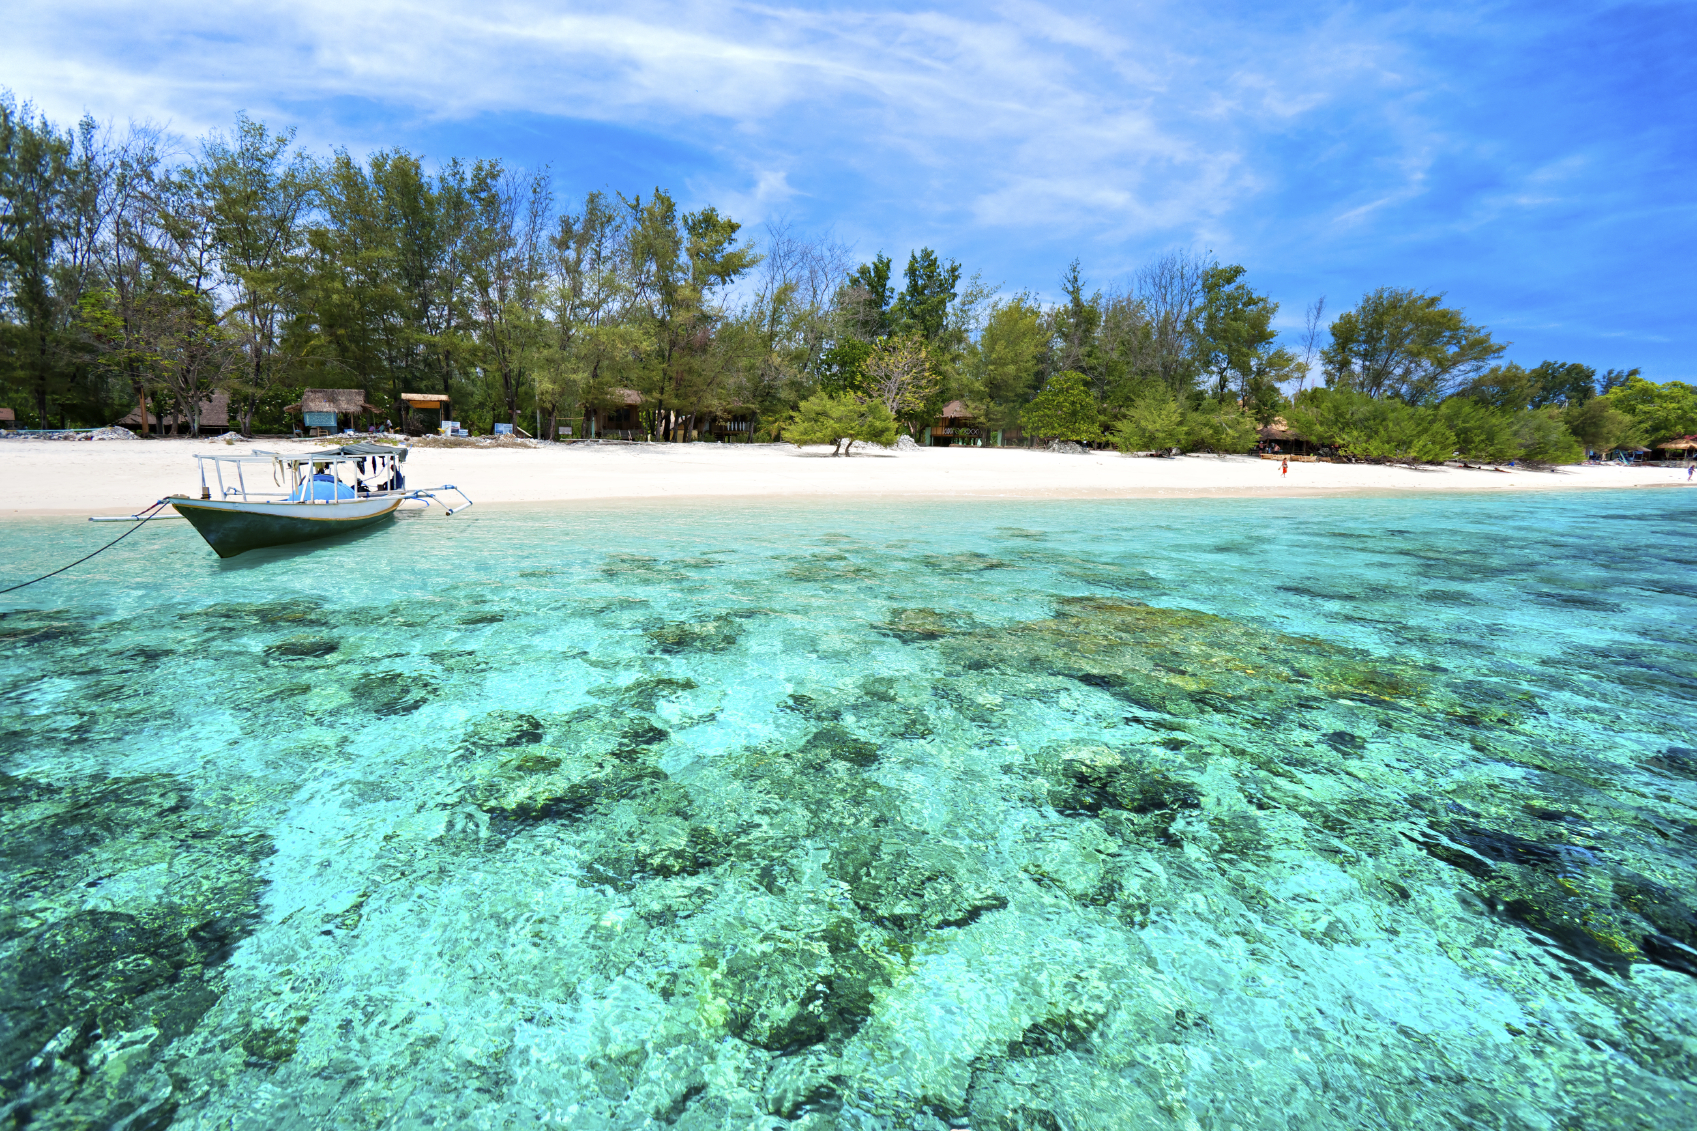 14 Spectacular Places to Visit in Indonesia